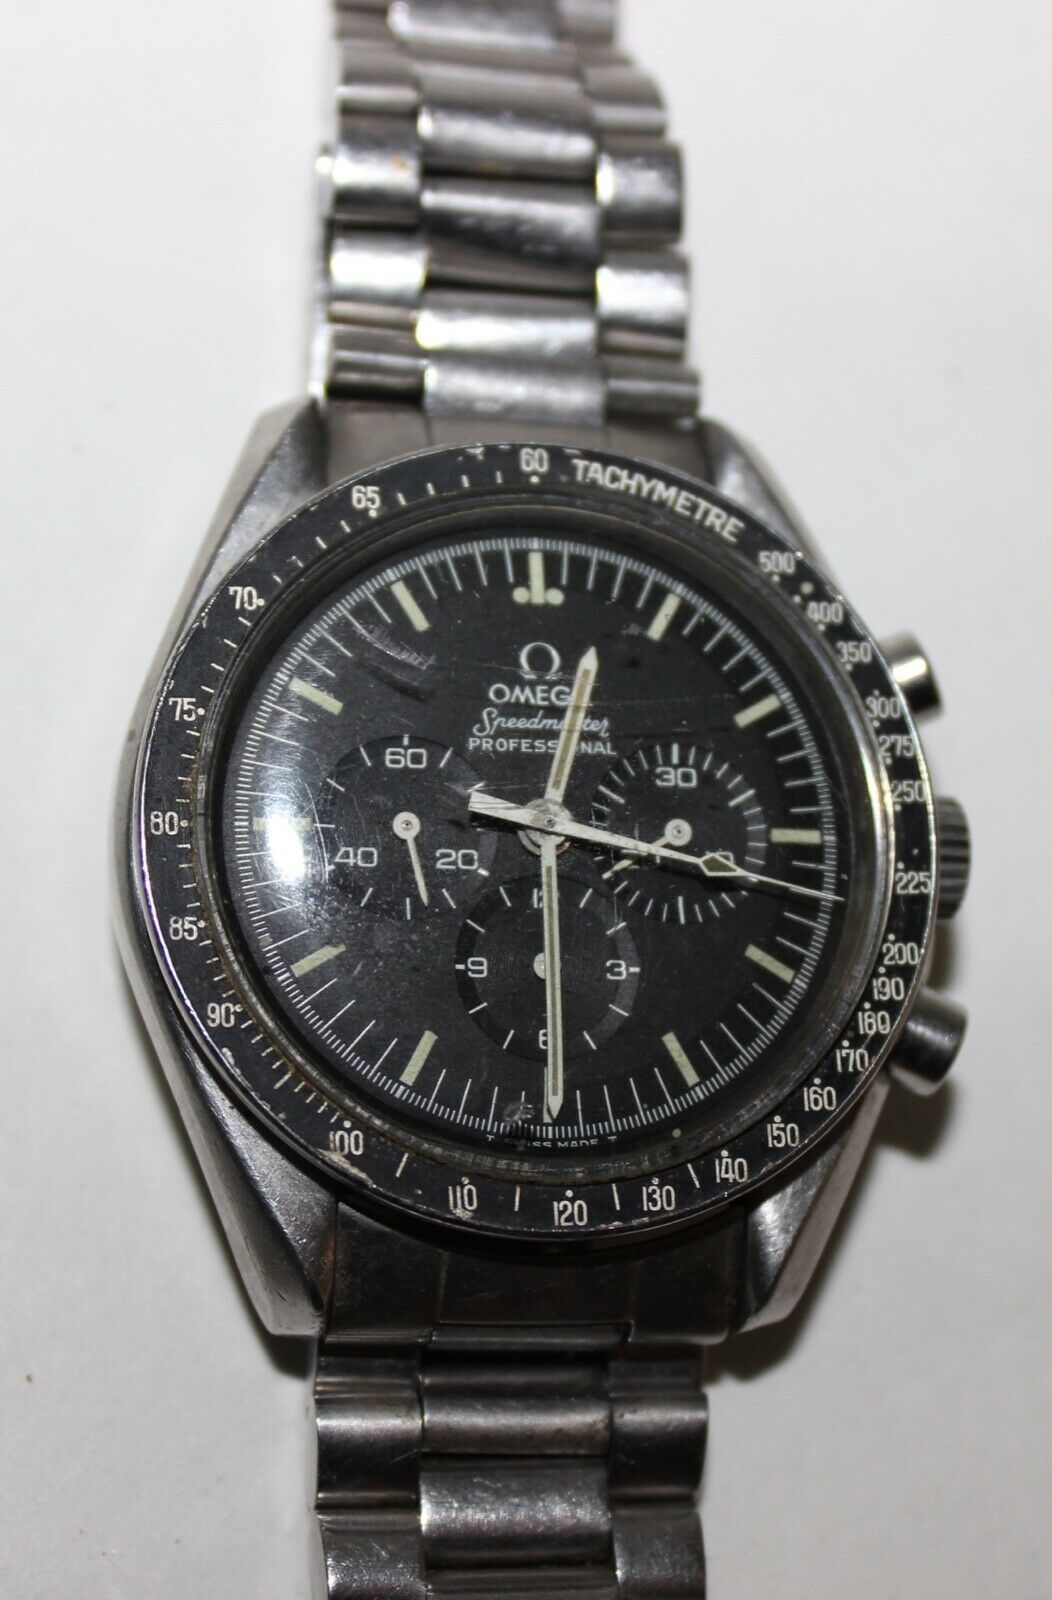 OMEGA SPEEDMASTER PROFESSIONAL 42 MM CHRONOGRAPH MOON WATCH–VINTAGE ESTATE NR! - watch picture 1